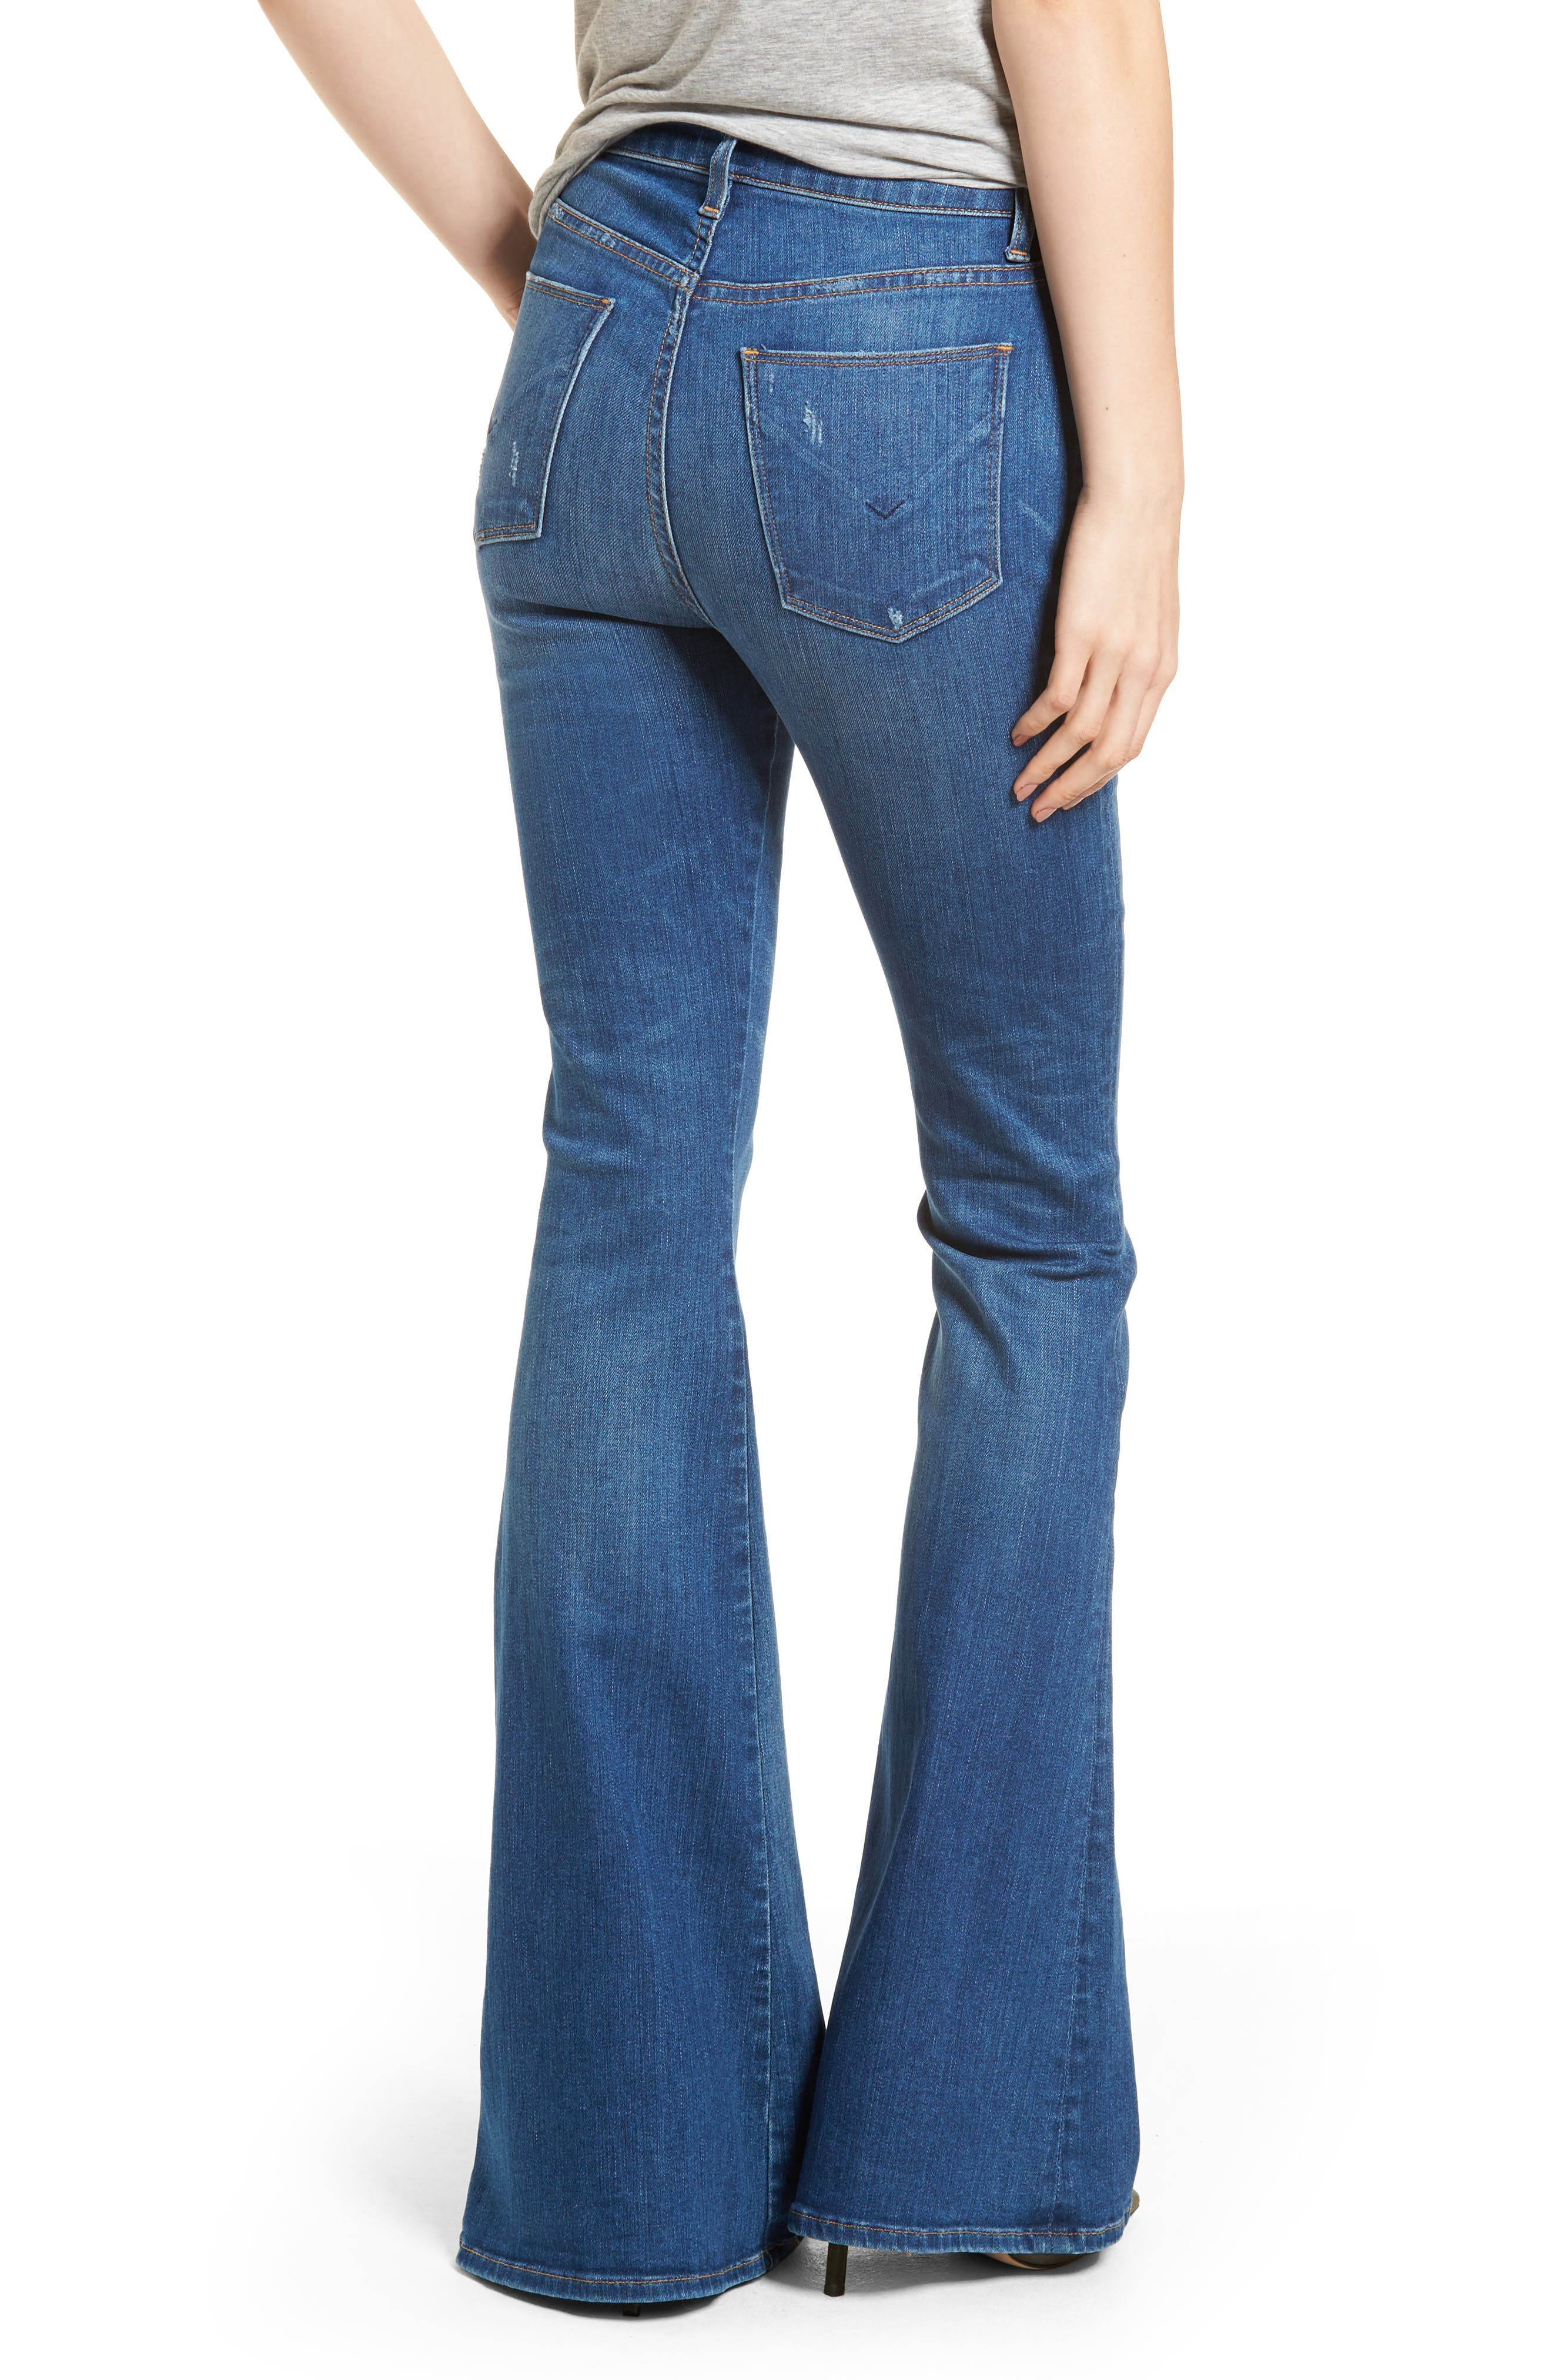 Holly High Waist Flare Jeans,                             Alternate thumbnail 2, color,                             401